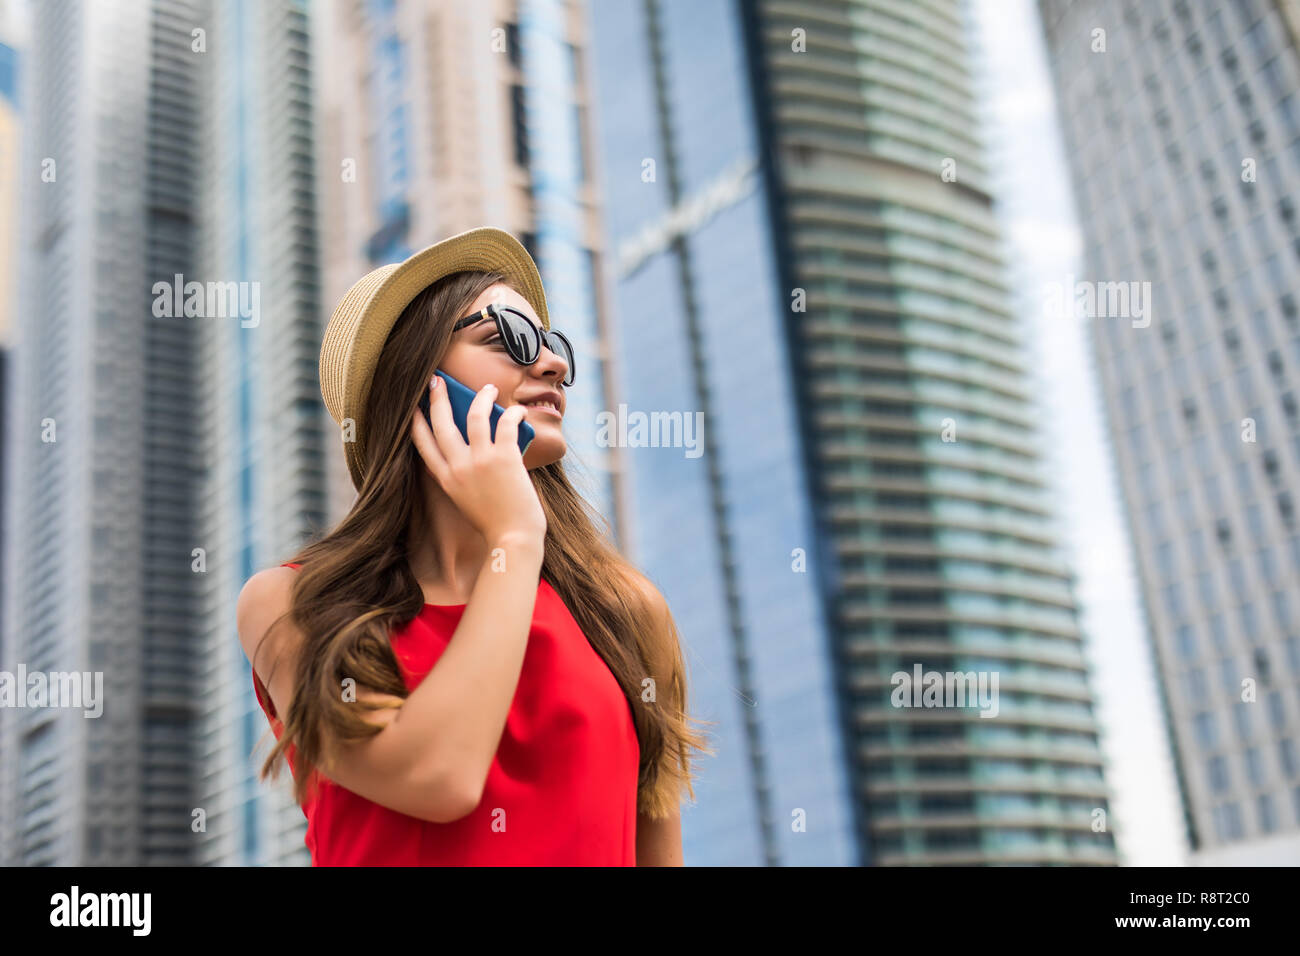 Portrait of young woman in red dress, sunglasses and summer hat talking on the phone on downtown skycrapers background - Stock Image